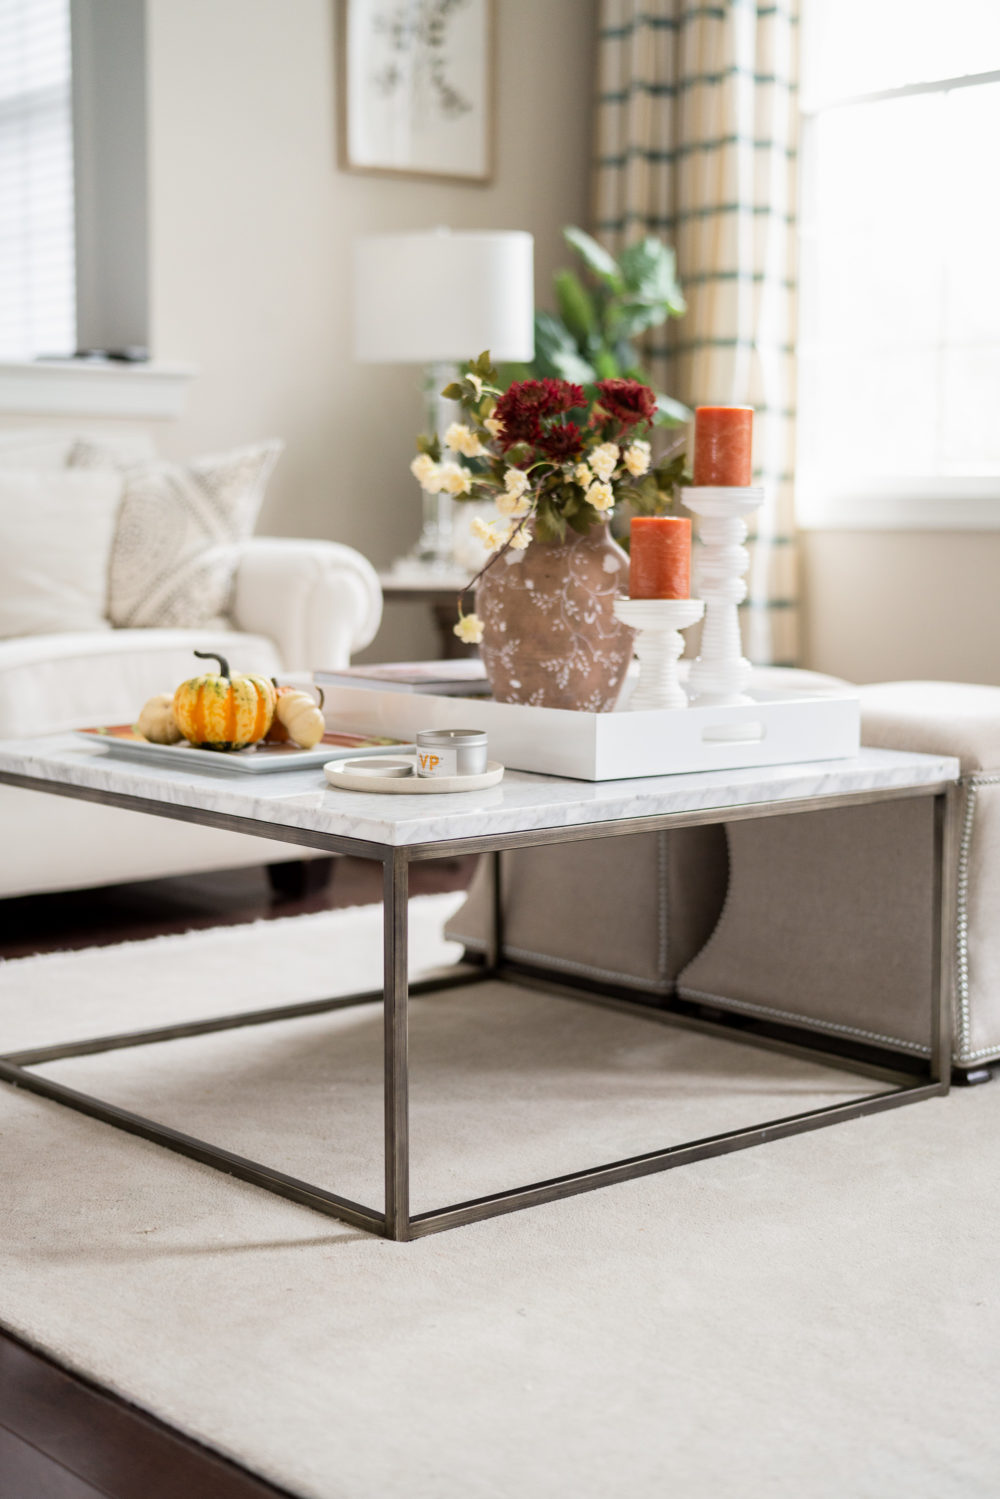 Petite Fashion Blog | Fall Home Decor Inspiration